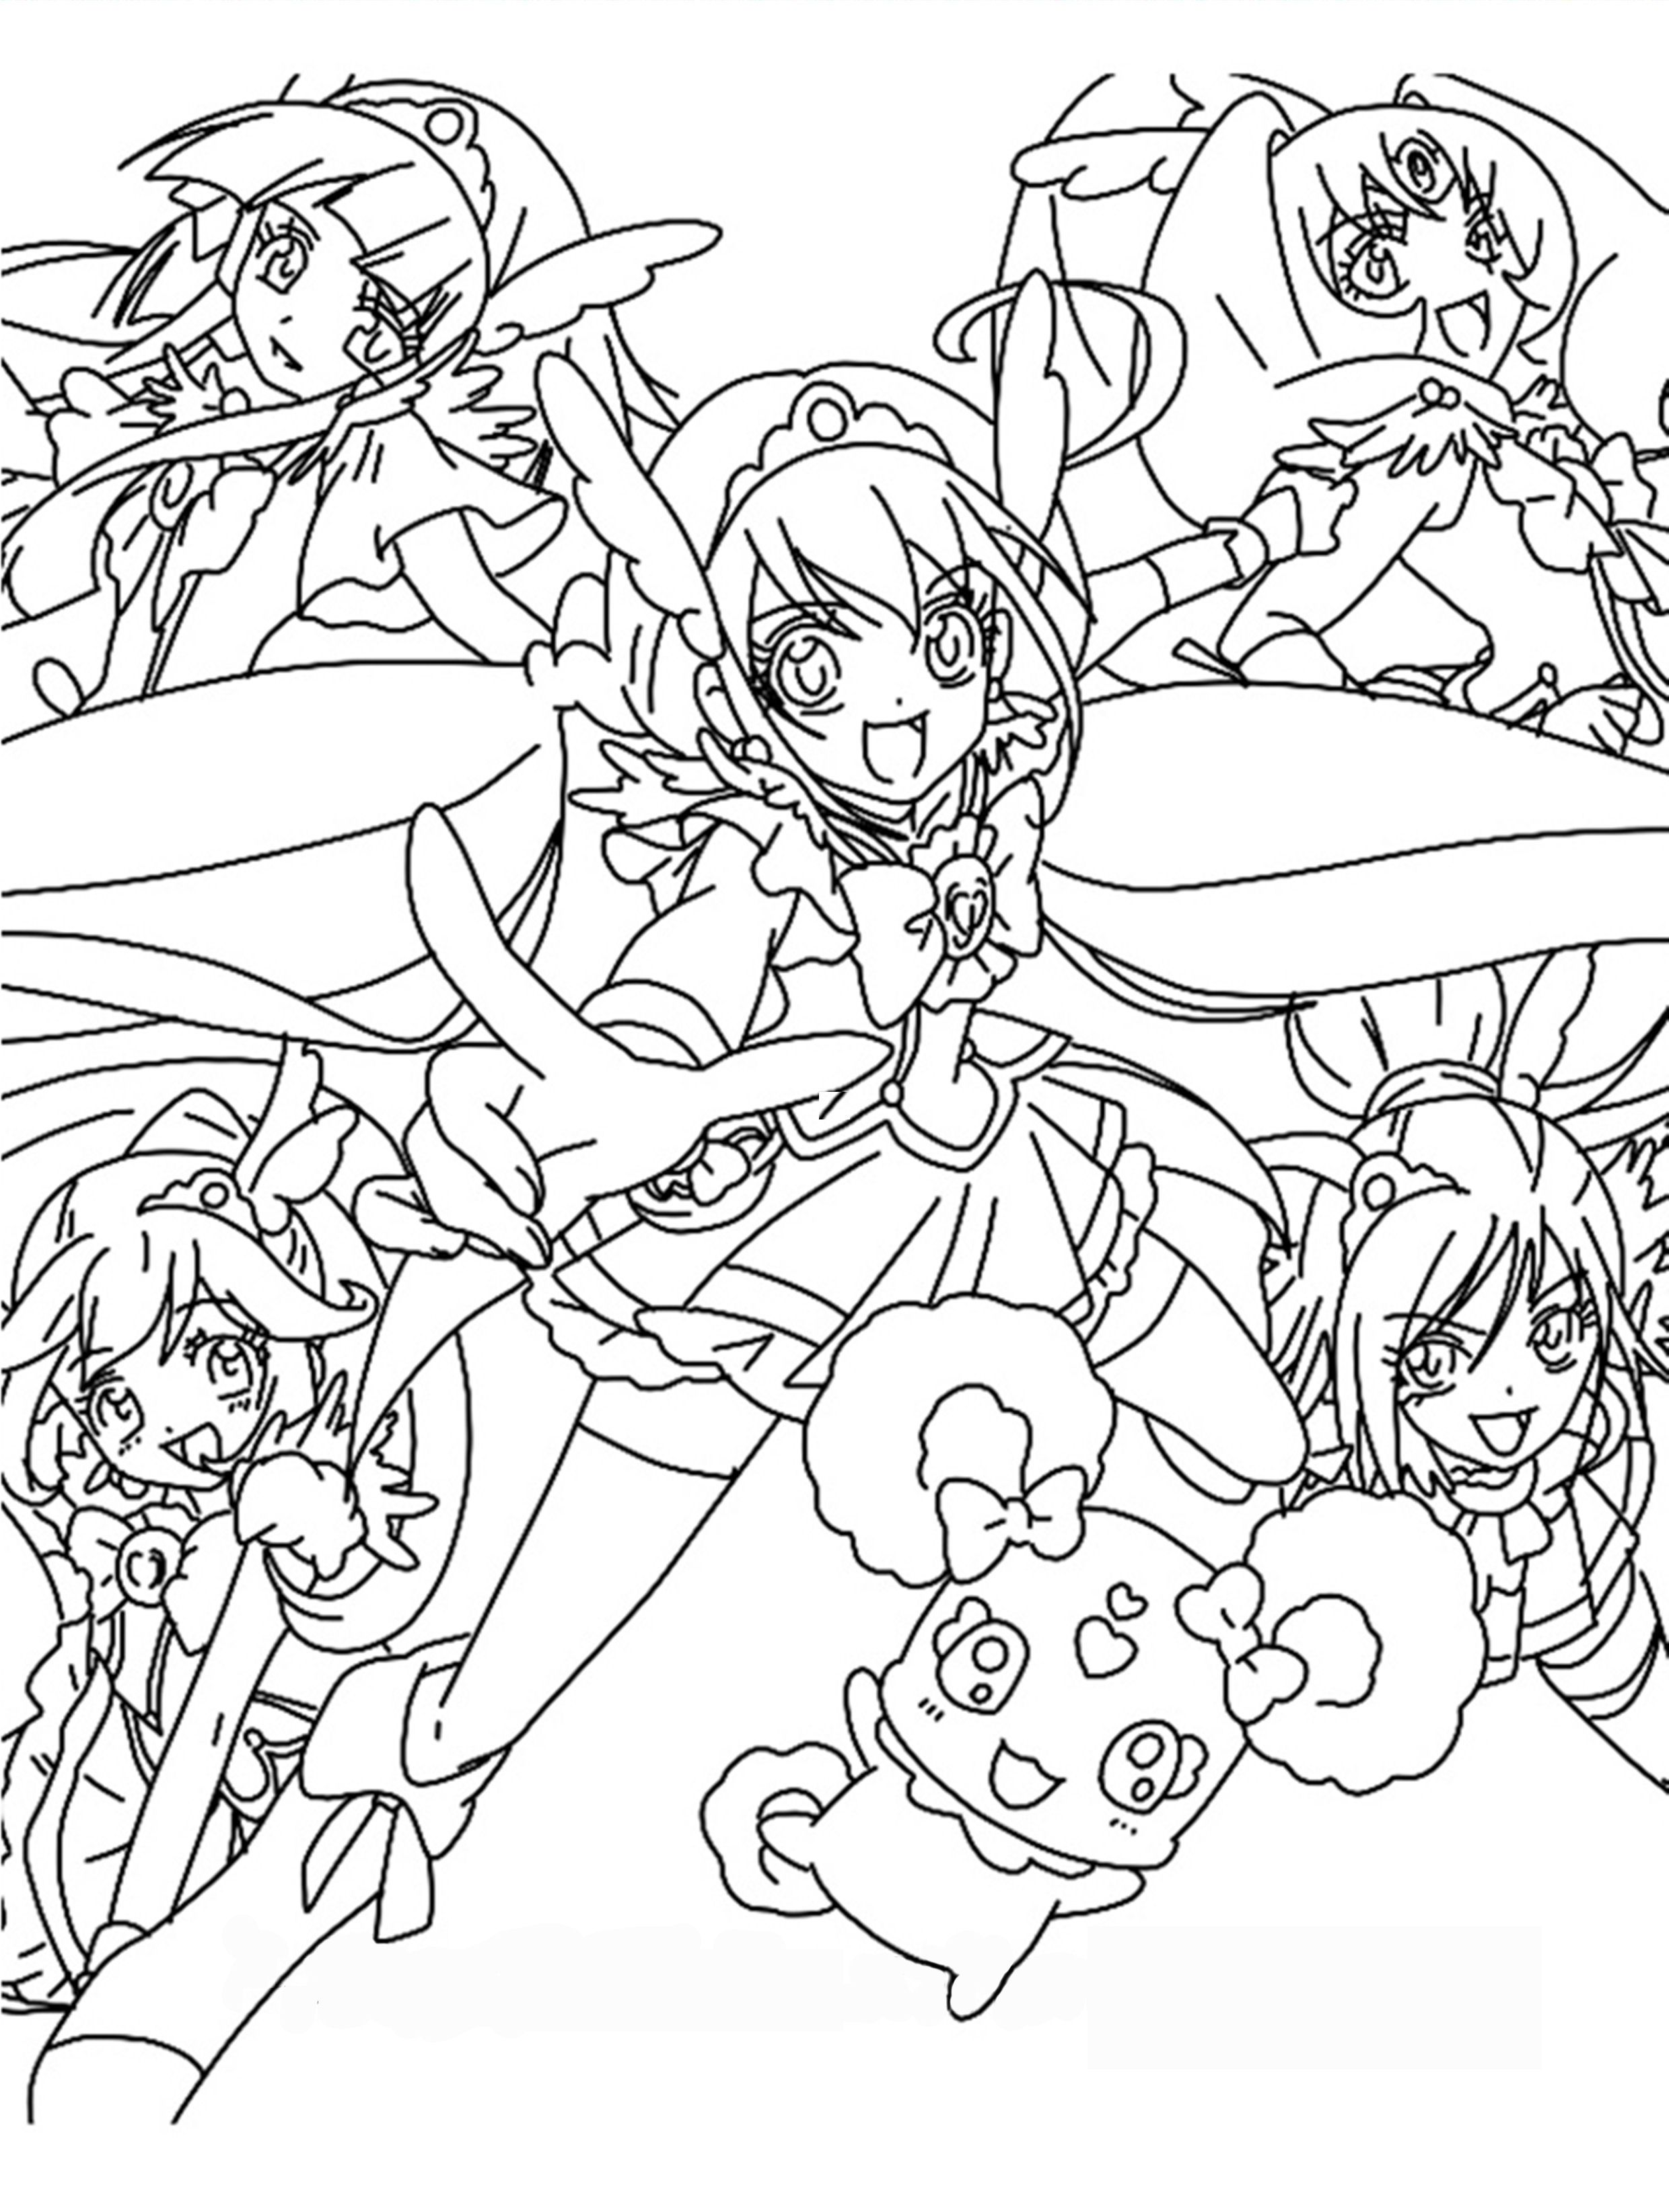 smile precure coloring pagescoloring